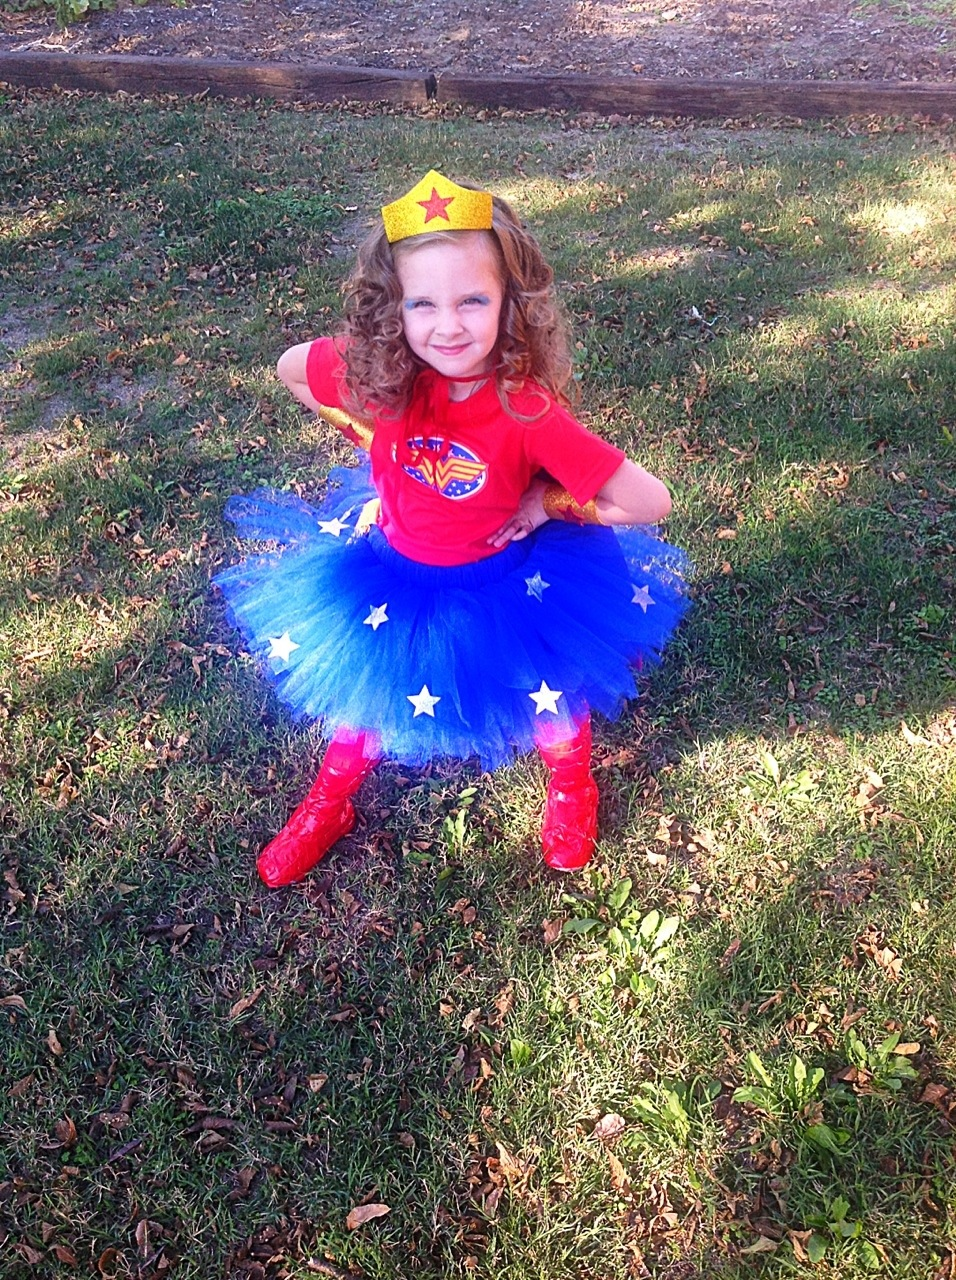 20121028-091700.jpg  sc 1 st  My Crazy Blessed Life! & DIY Super Hero Boots | My Crazy Blessed Life!